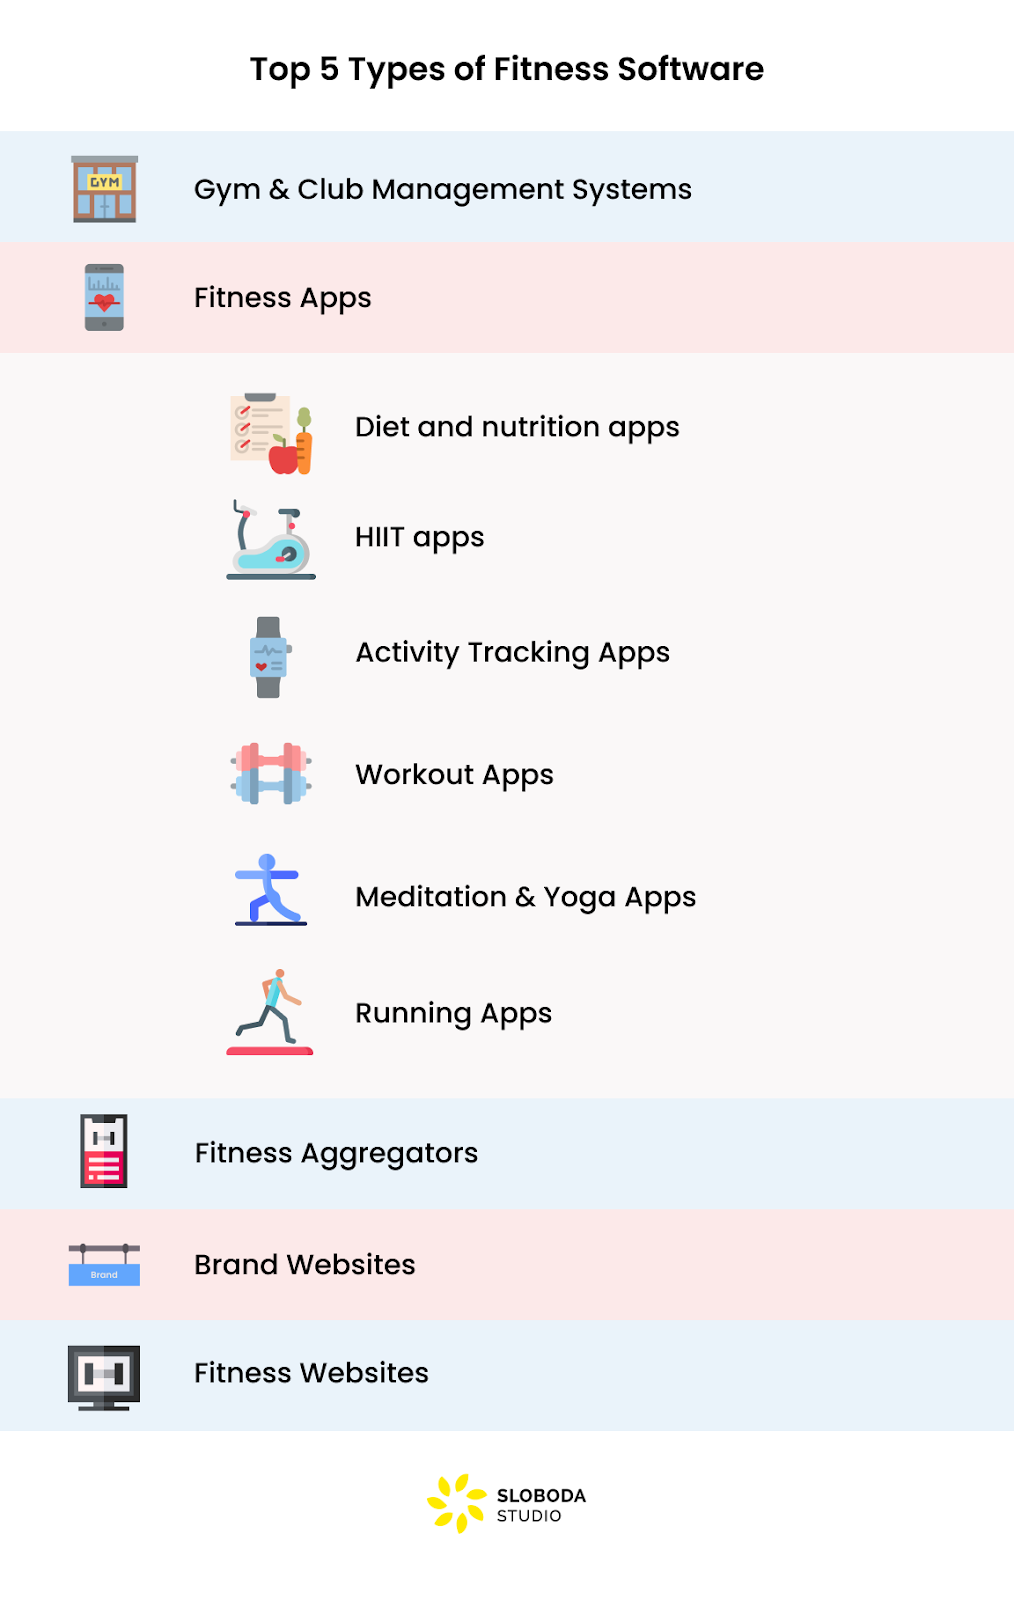 Top 5 Types of Fitness Software